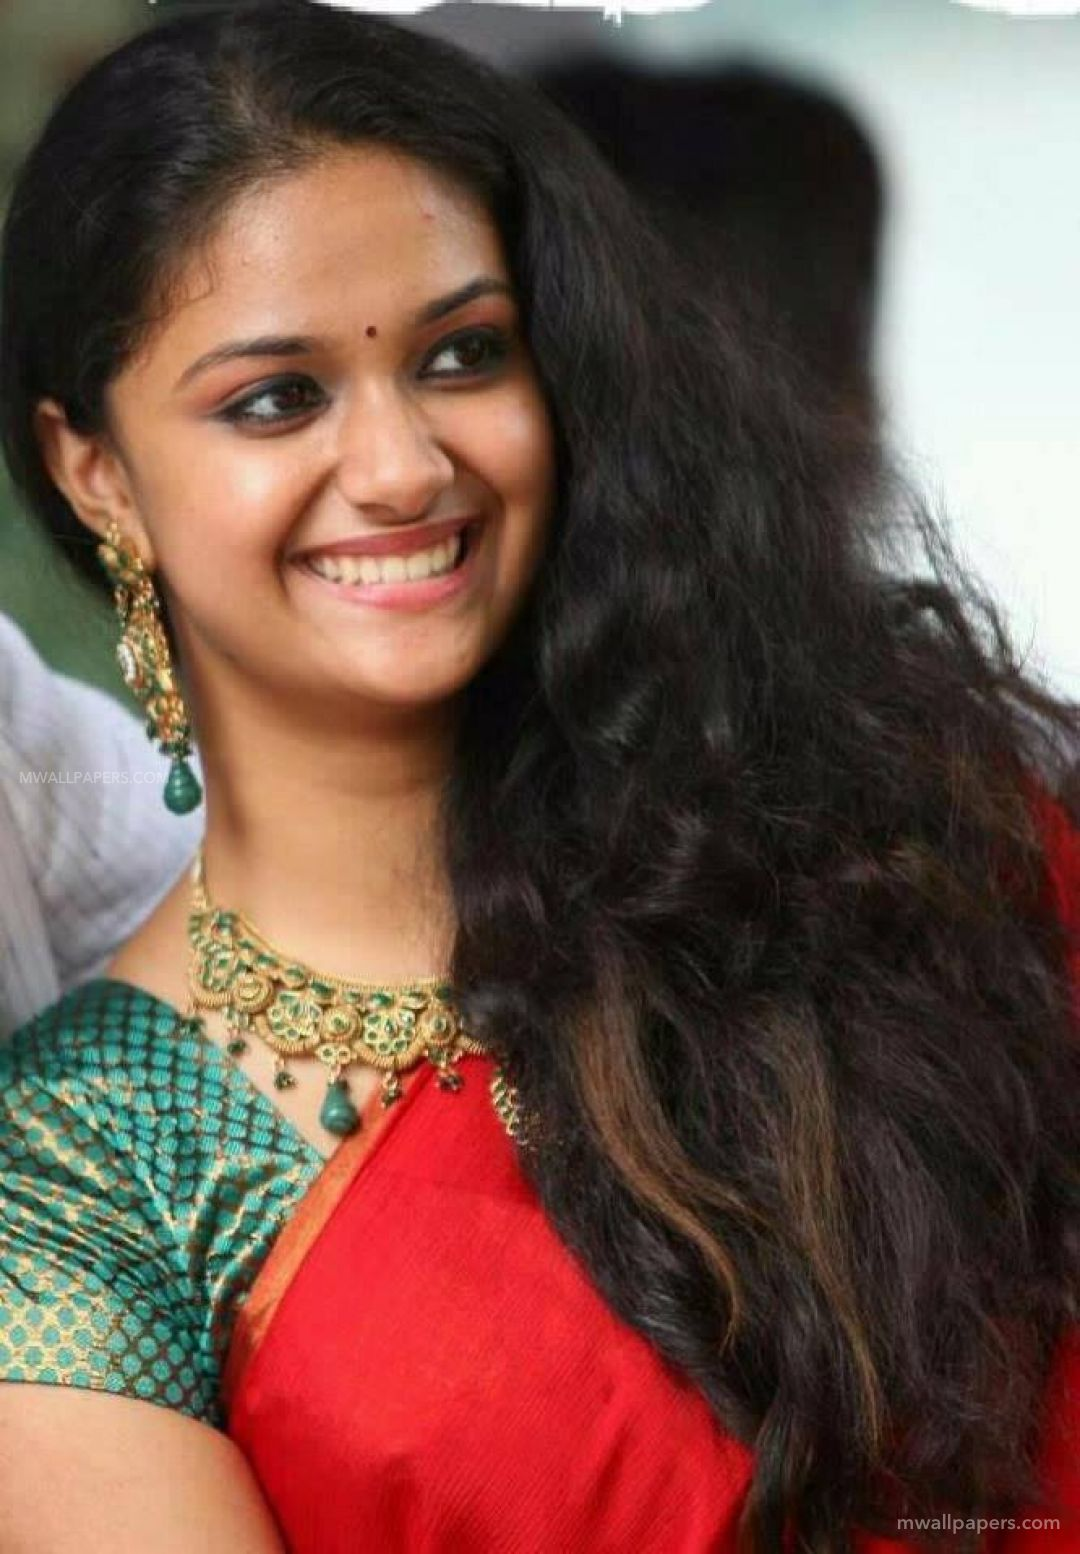 Keerthy Suresh HD Wallpapers (Desktop Background / Android / iPhone) (1080p, 4k) (58330) - Keerthy Suresh